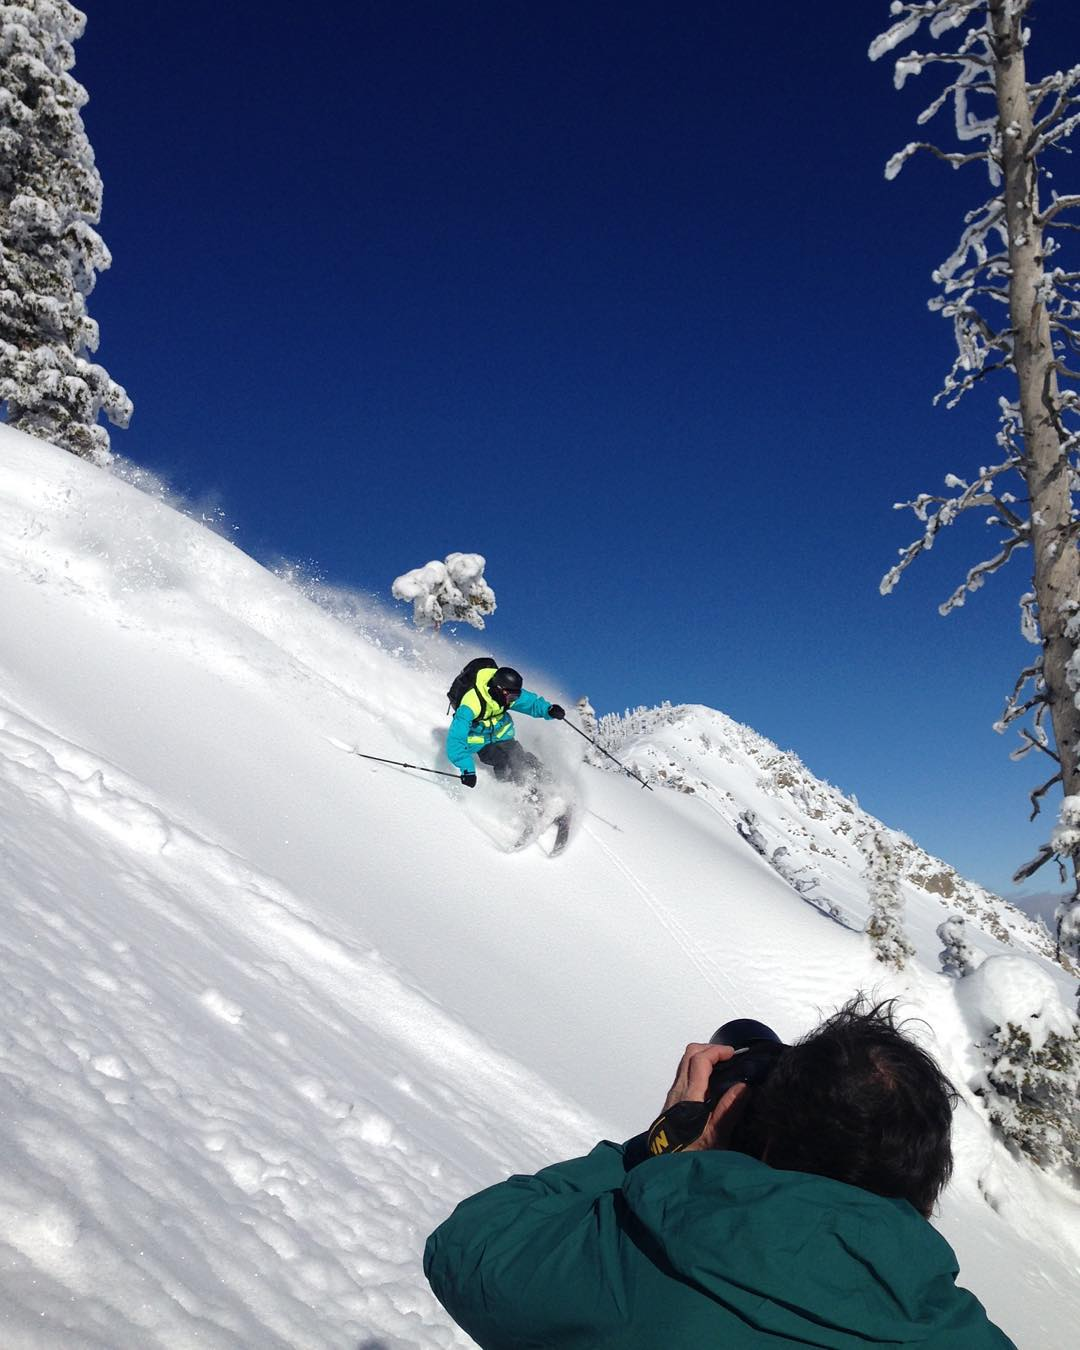 Backyard conditions are prime ! @altaskiarea with @leecohen_pics #shapingskiing | photo: @austinramaley